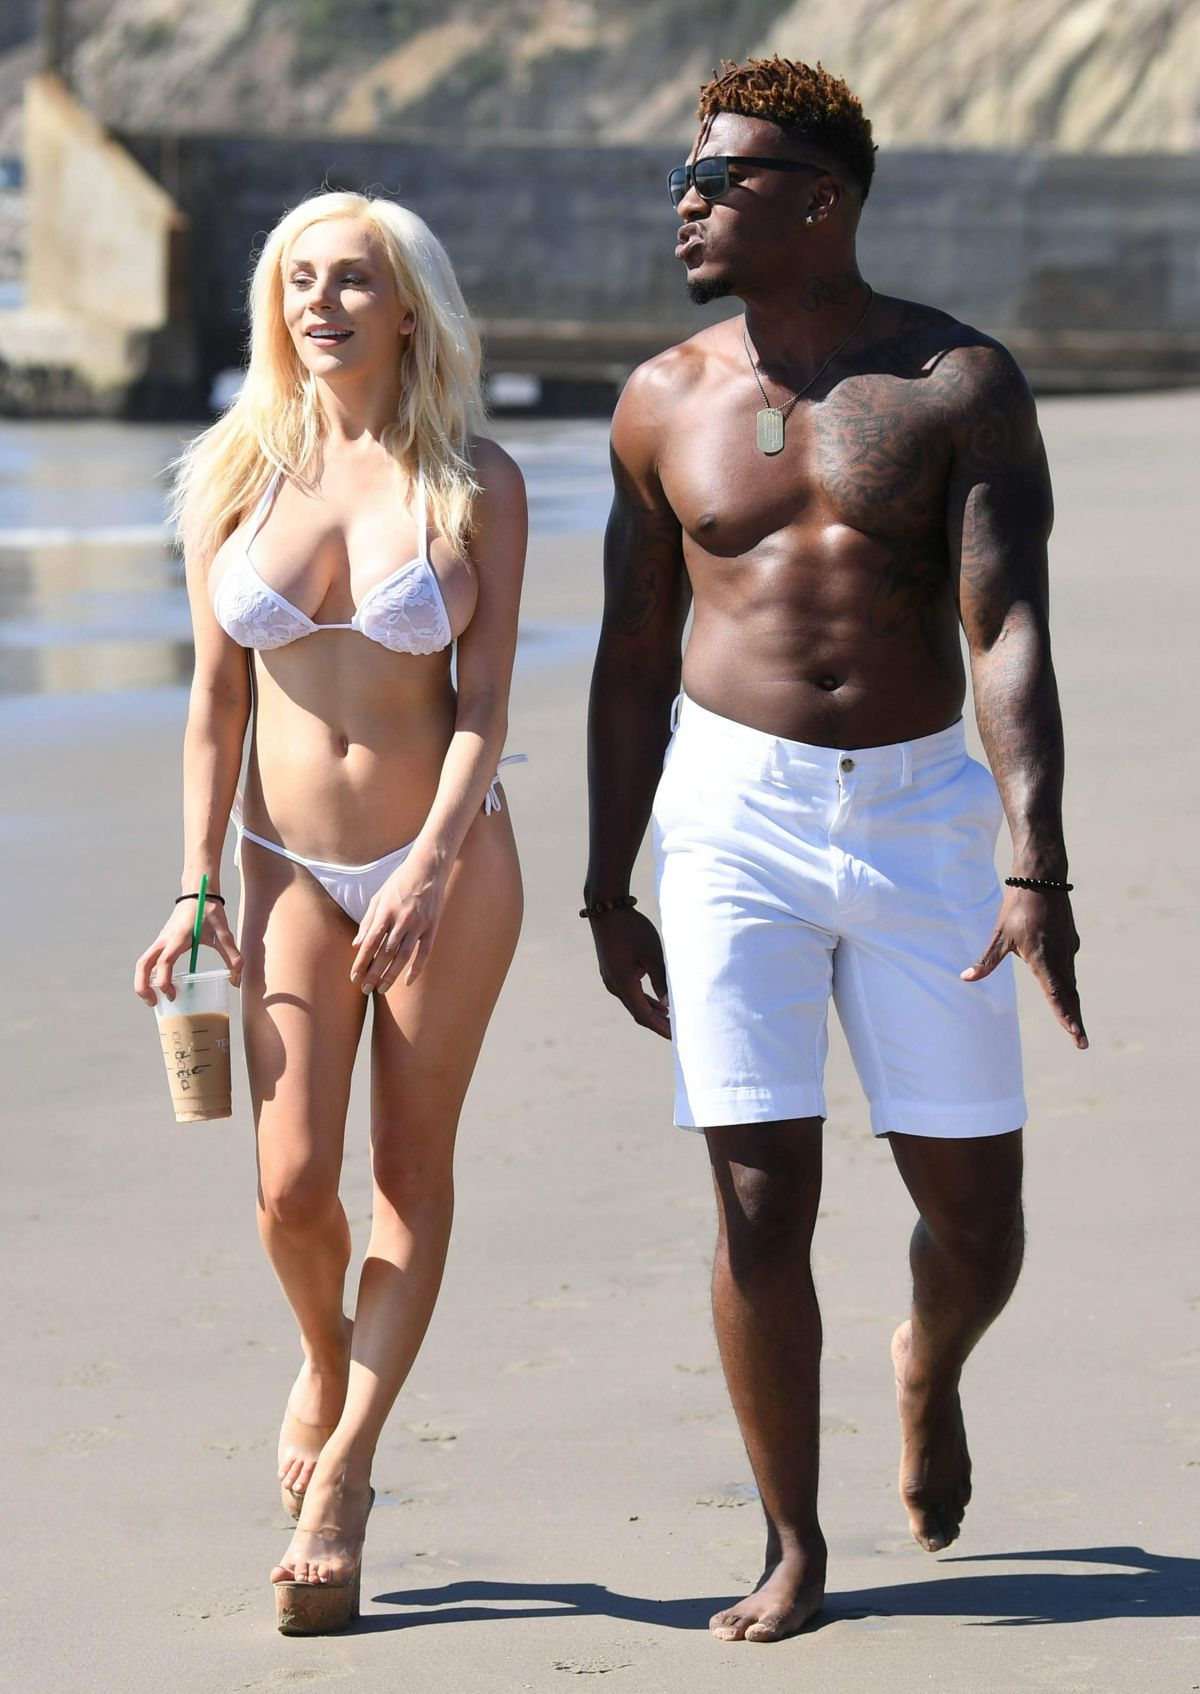 Courtney Stodden in Bikini on the beach in Malibu Pic 5 of 35